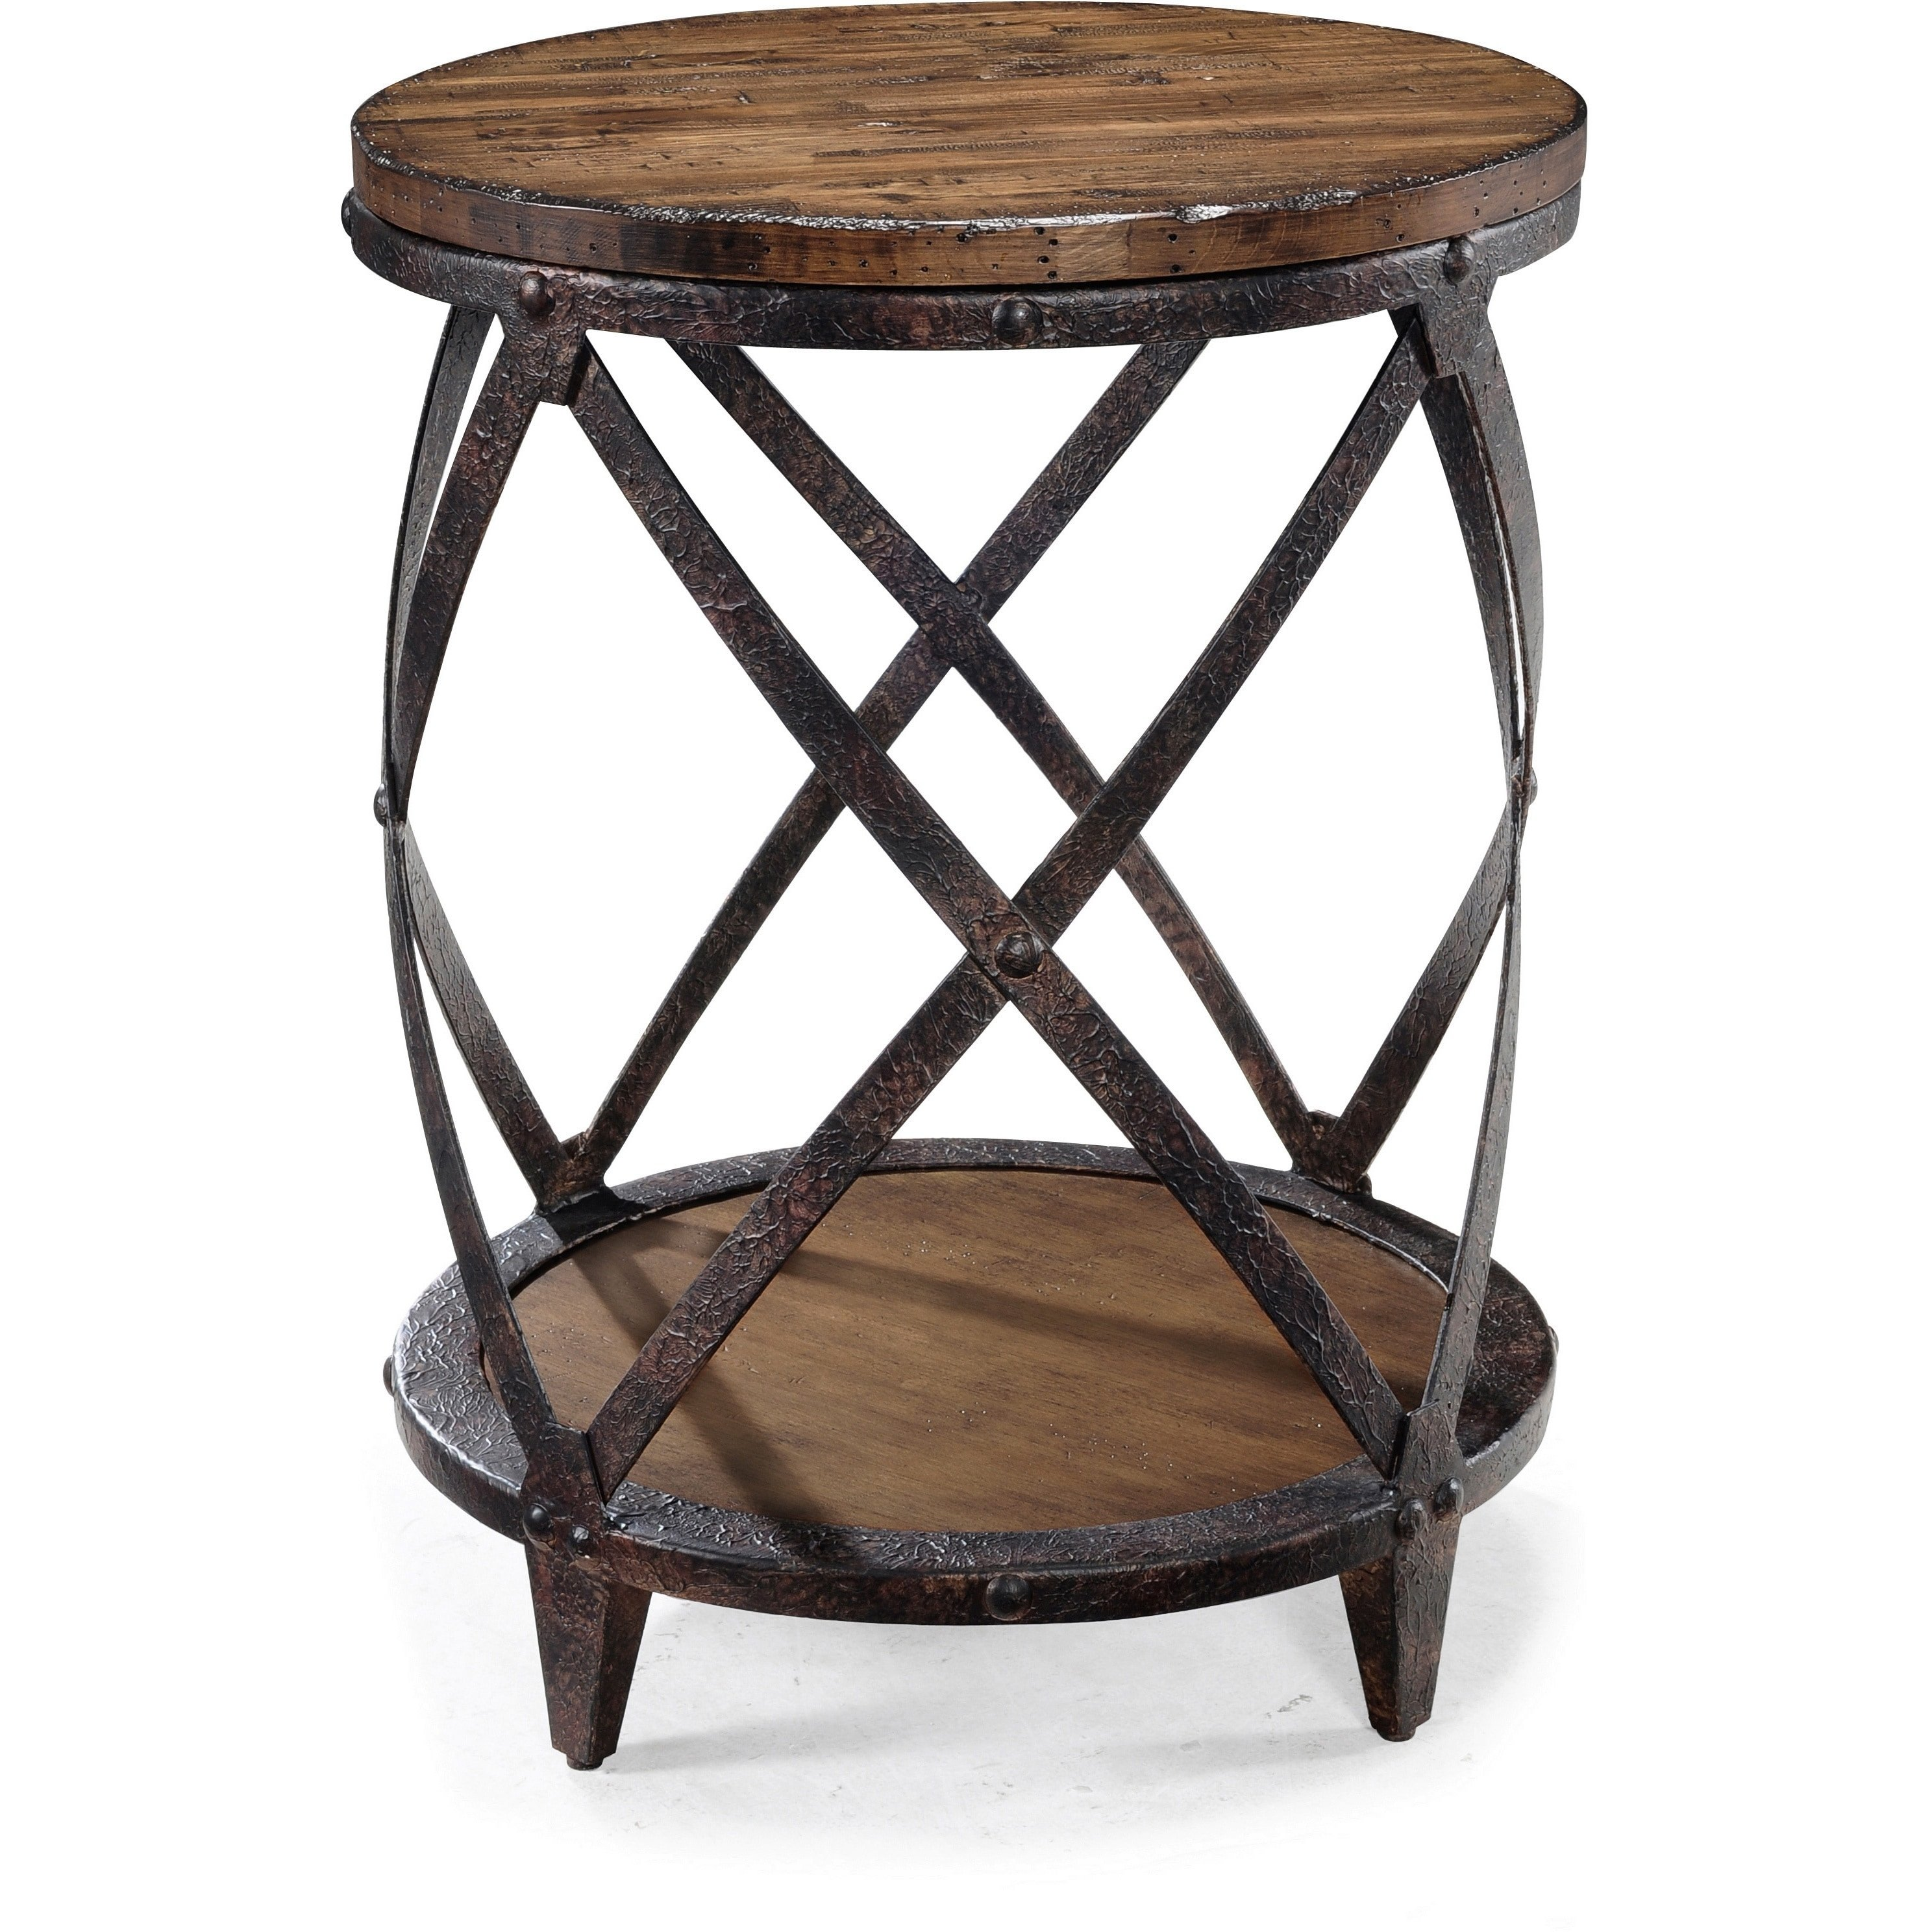 oliver james canova distressed pine wood round end table pinebrook industrial natural accent pub set small solid coffee tiffany stained glass chandelier patio parasol with drawer